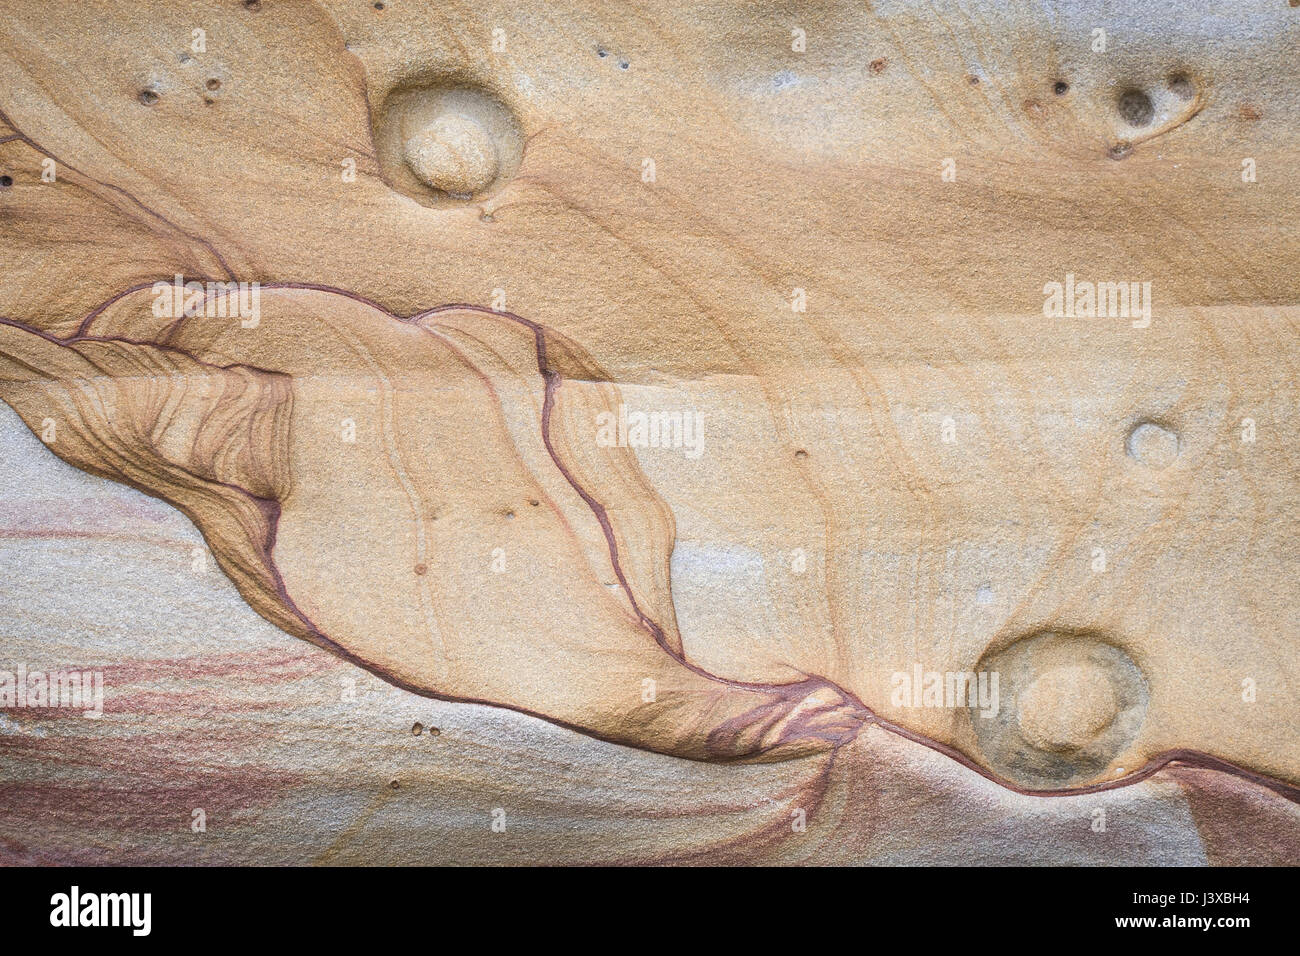 An abstract shape in a sandstone cliff that resembles a seated figure. Stock Photo